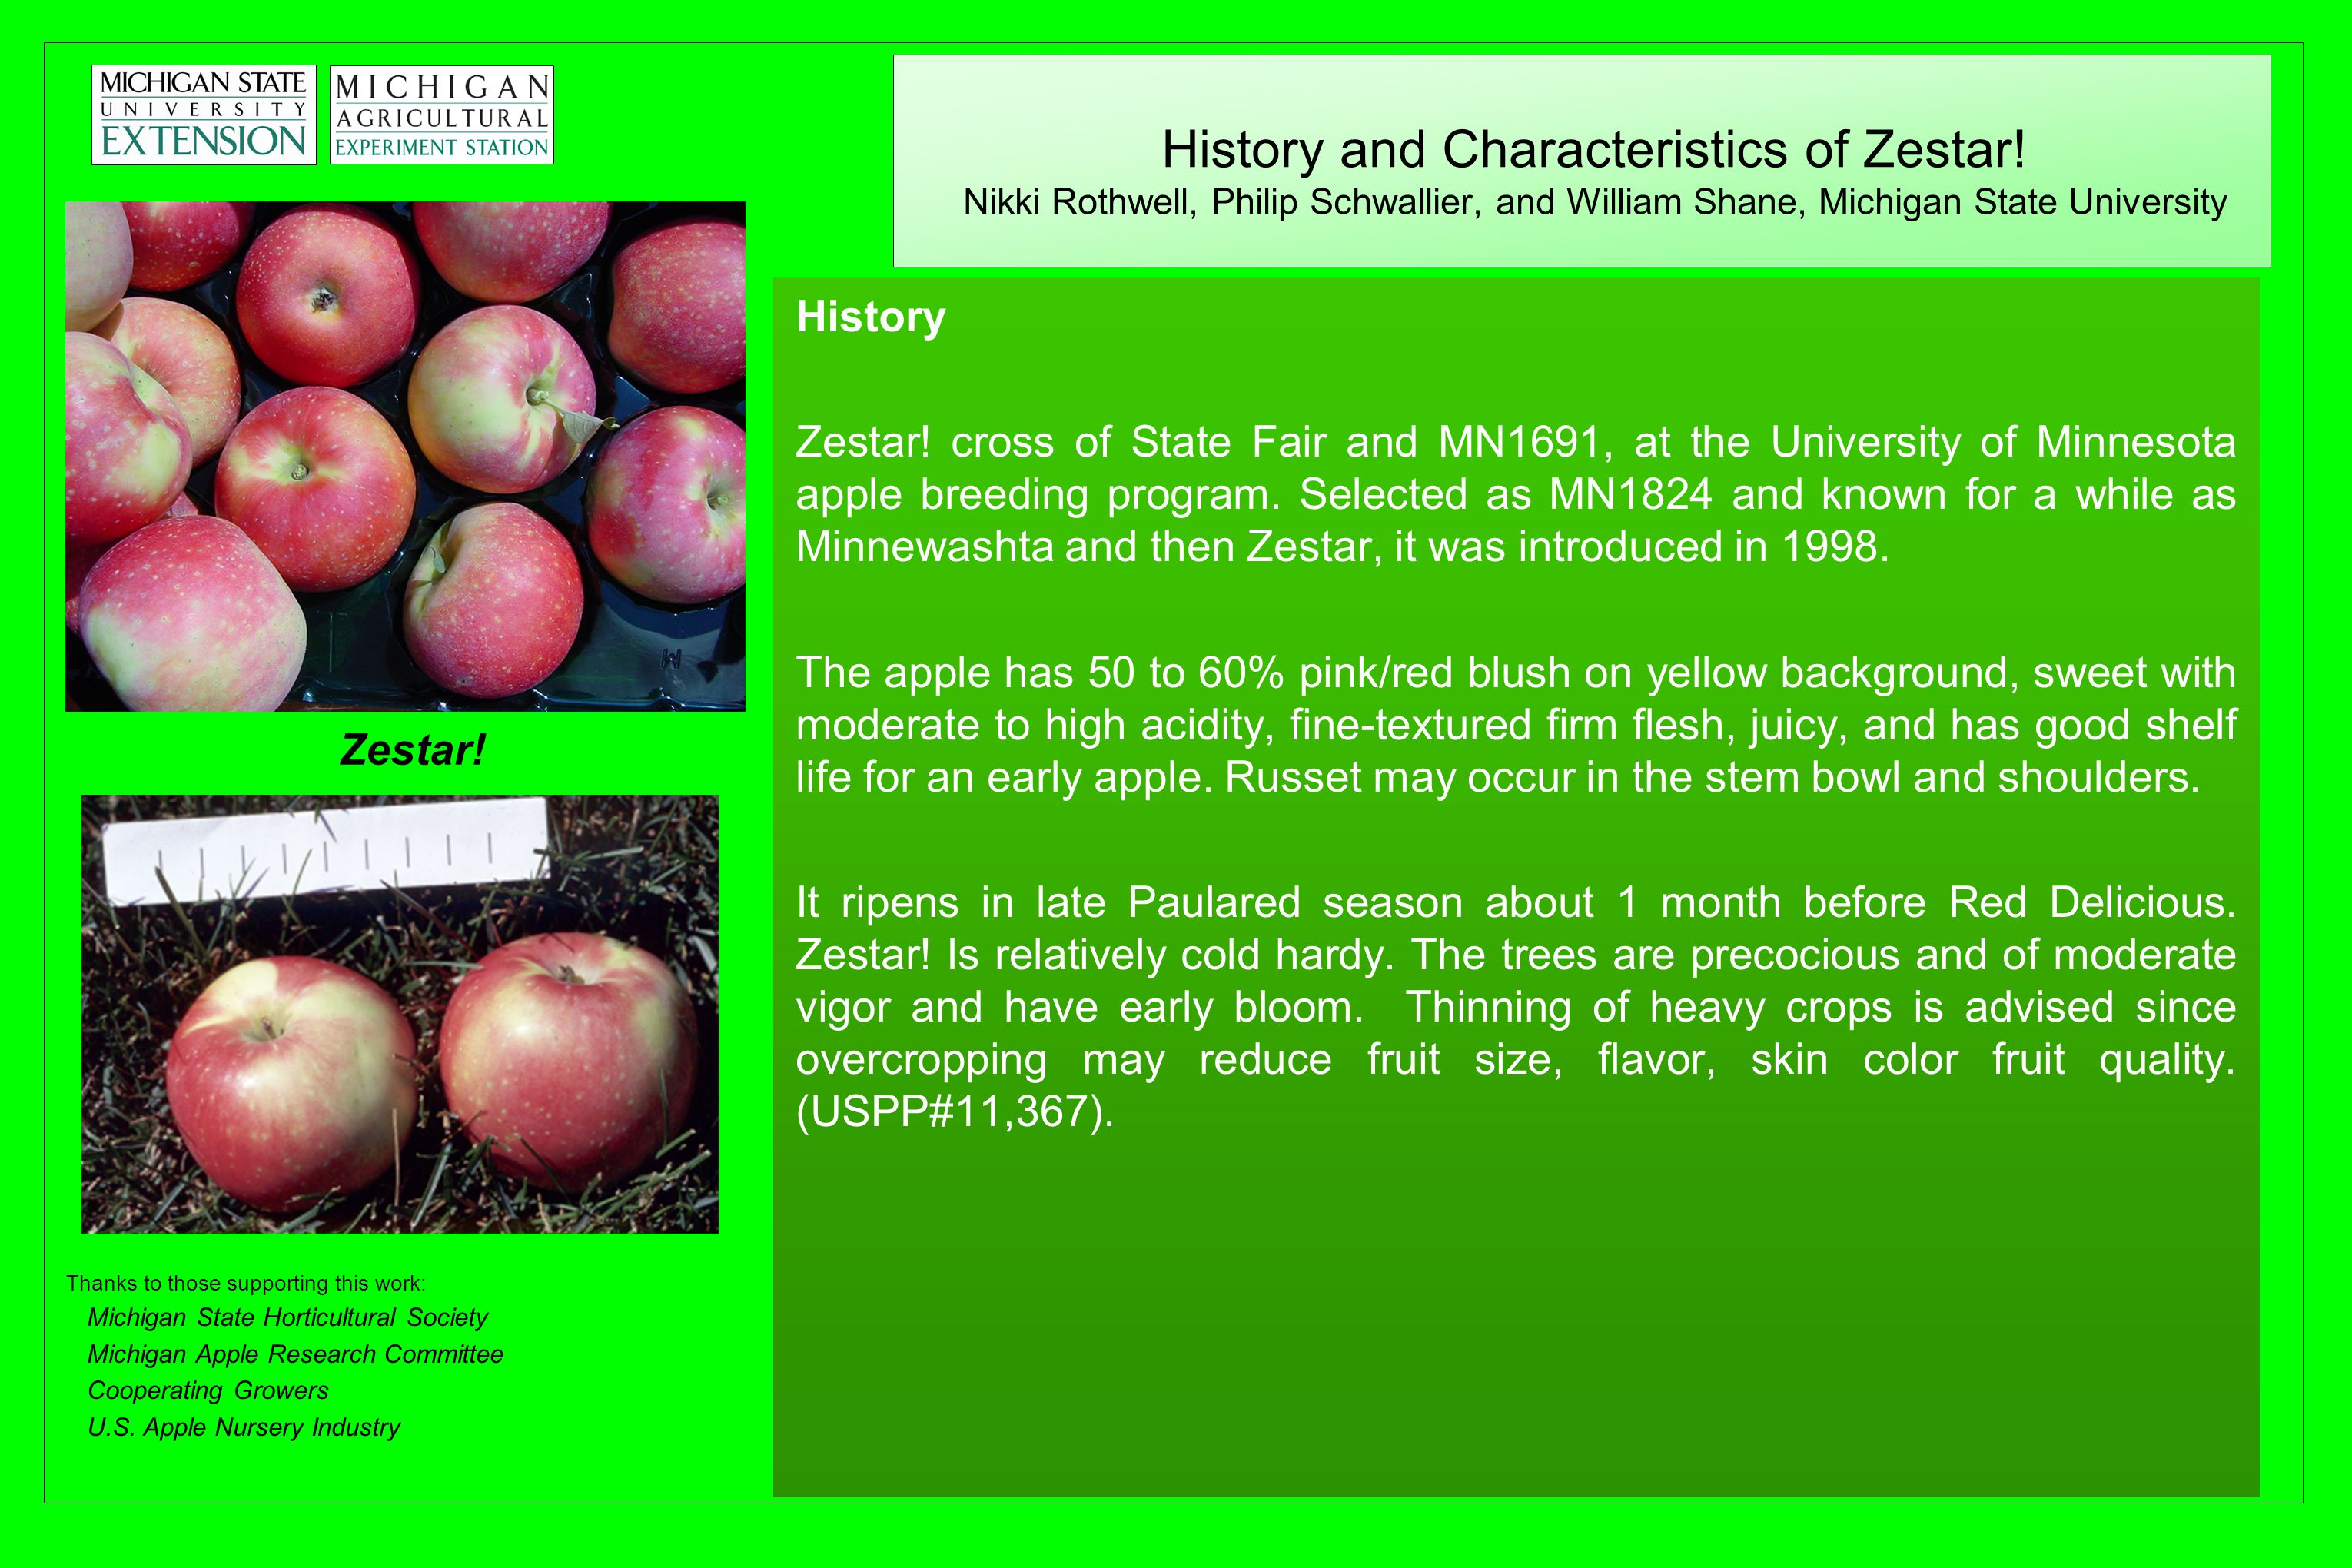 History and Characteristics of Zestar.